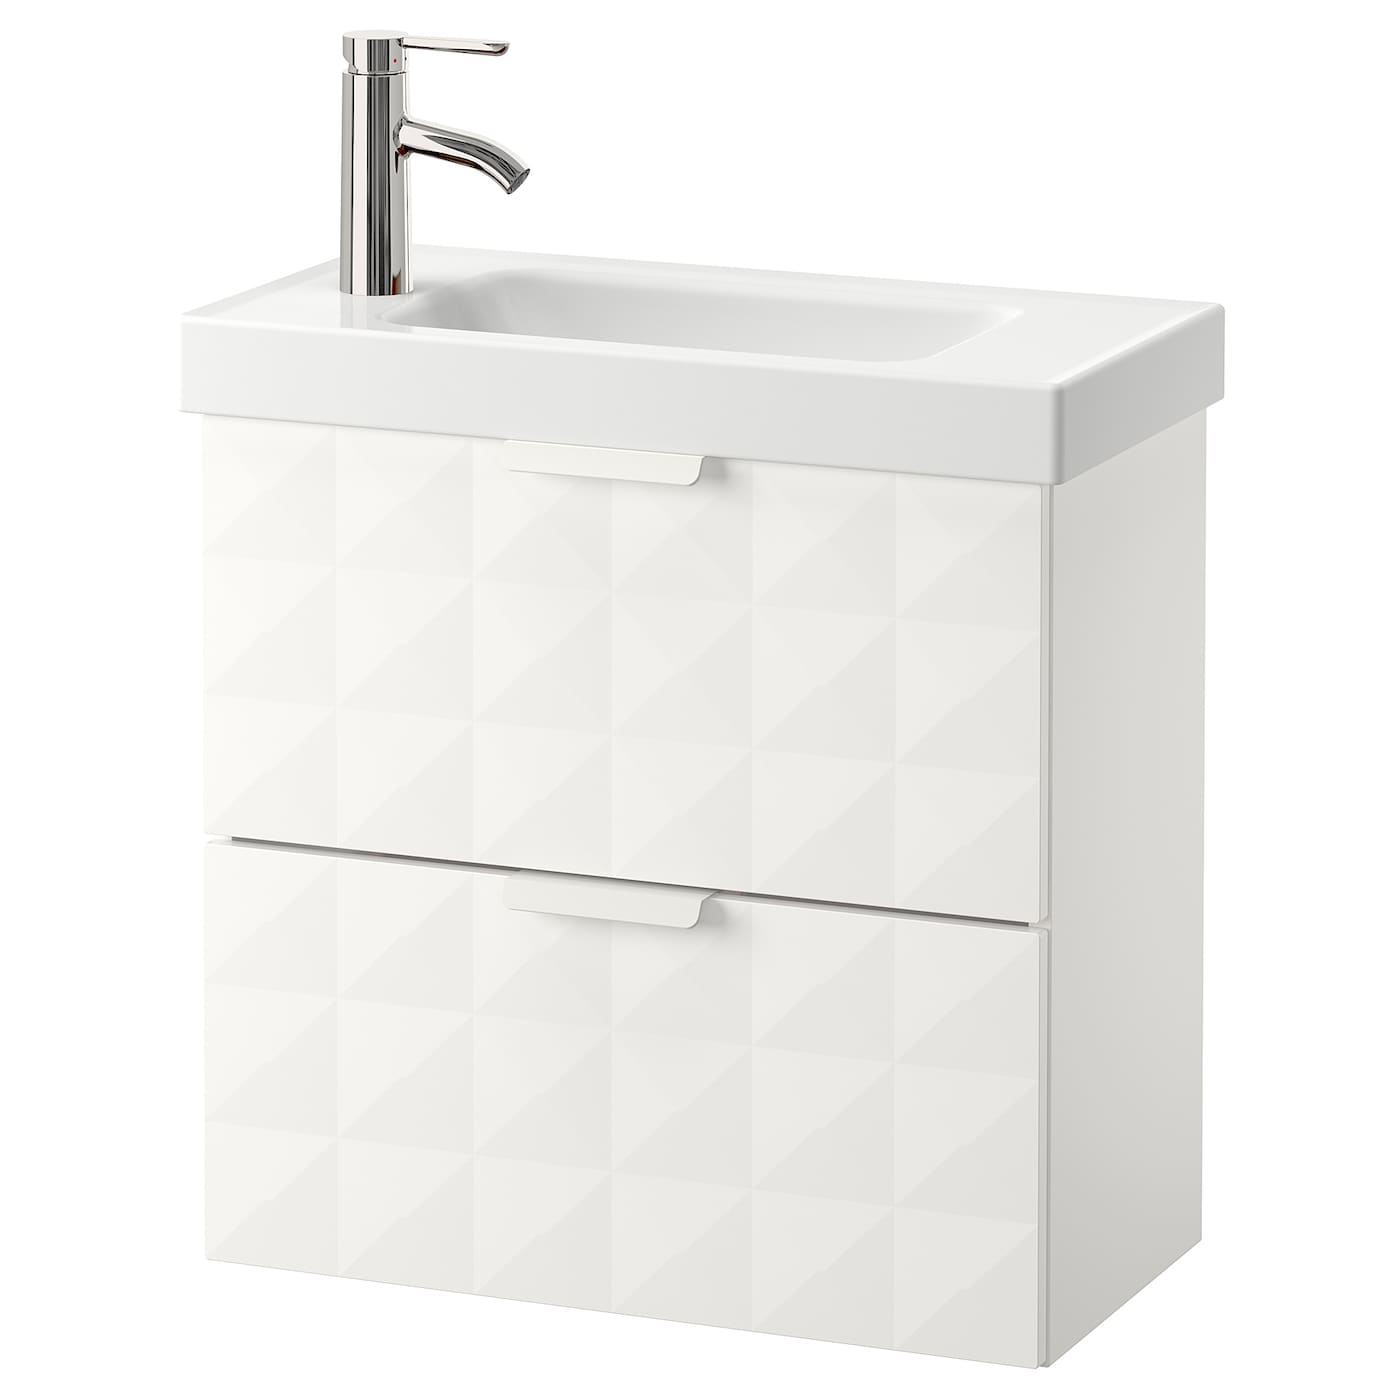 Vanity units sink cabinets wash stands ikea for Evier salle de bain ikea